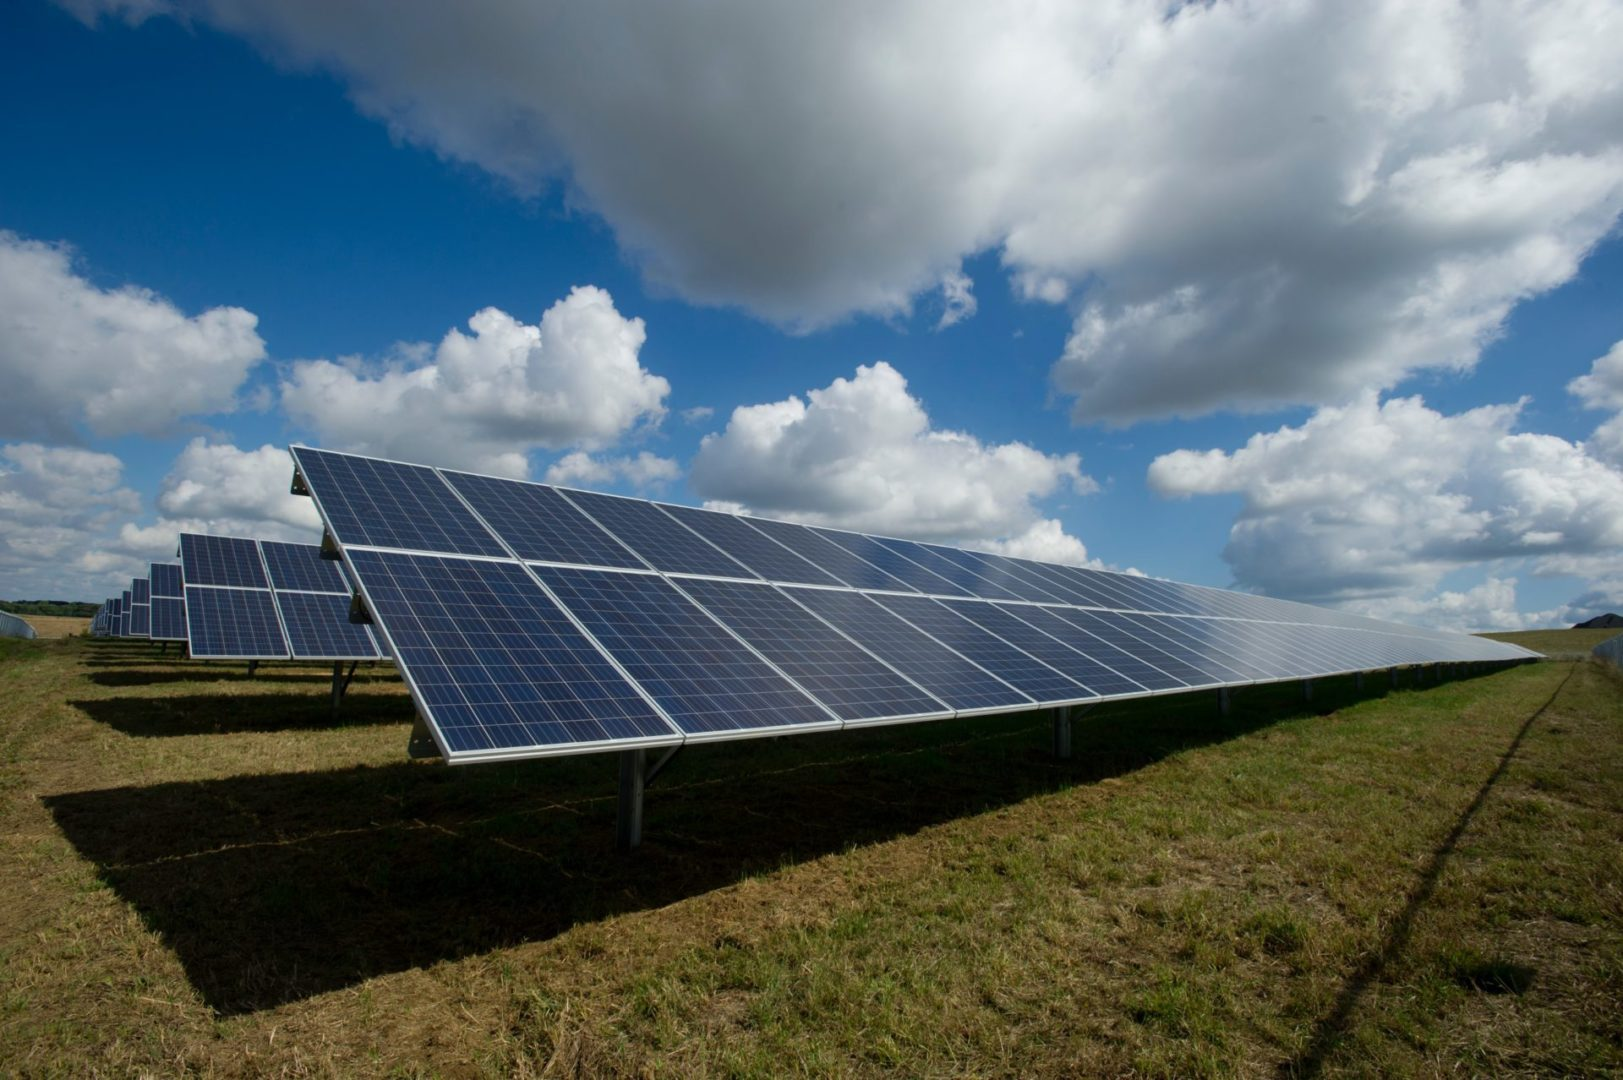 New energy amendments open up new markets for independent power producers